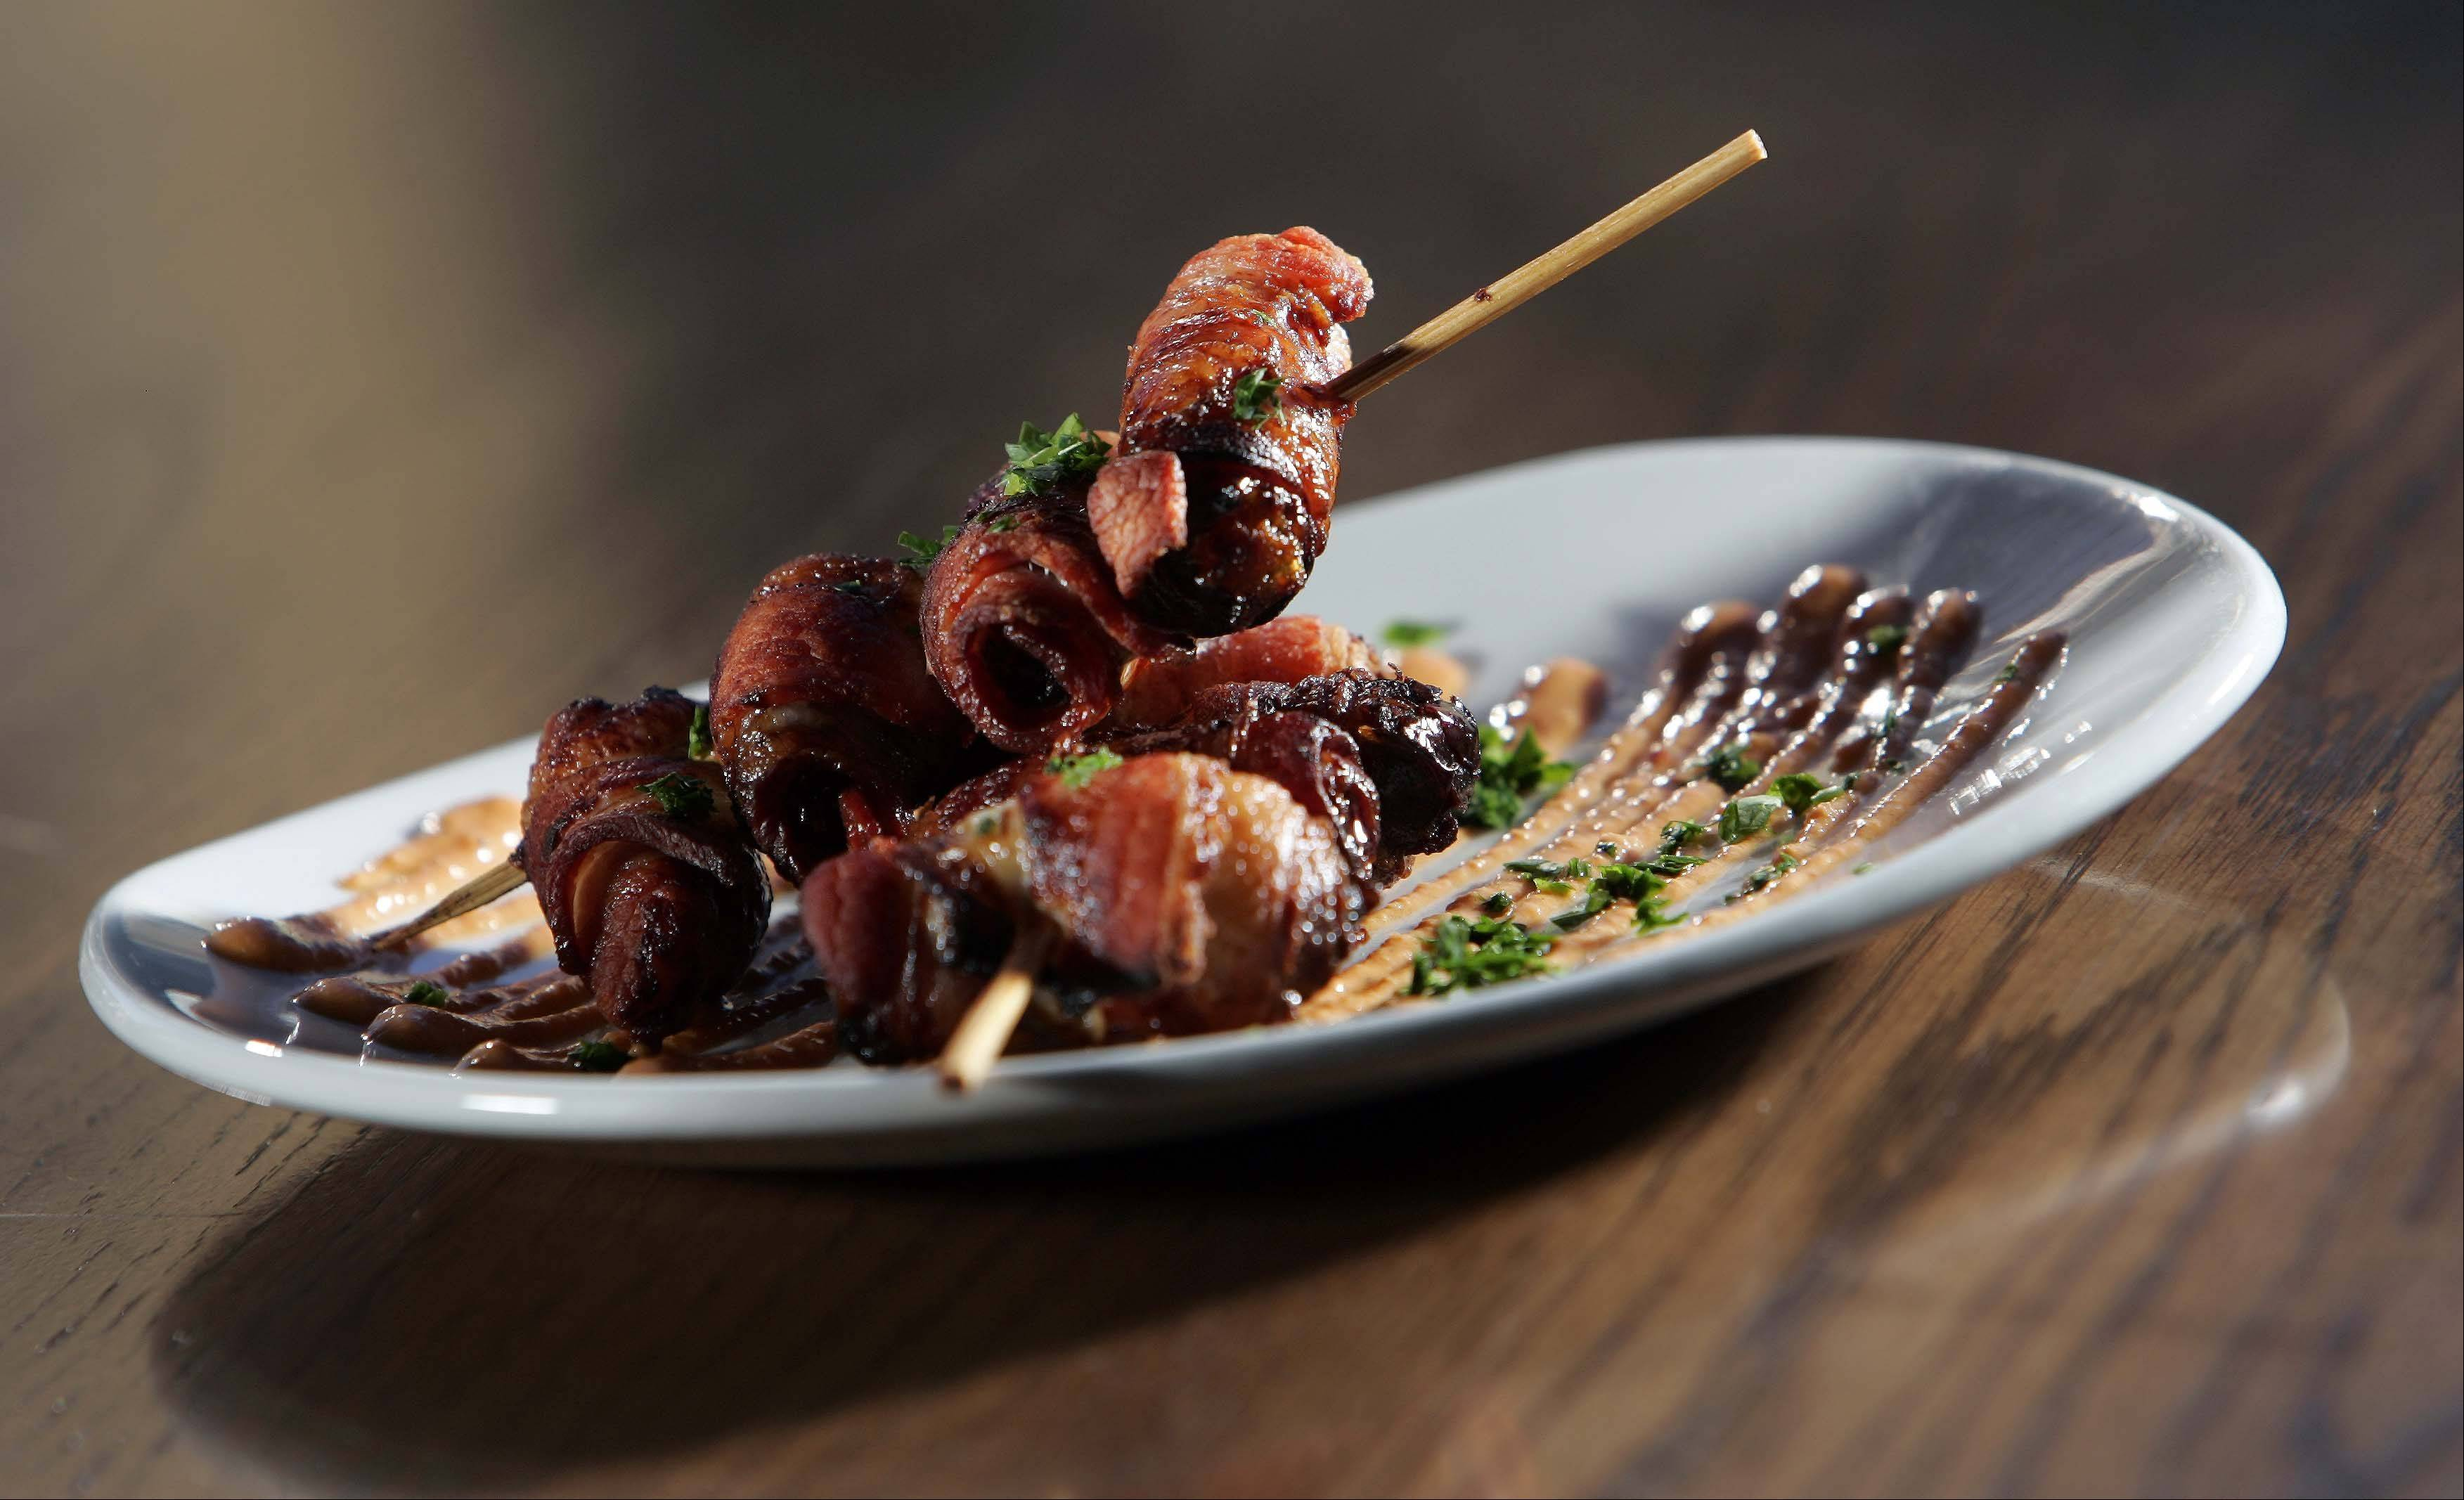 Bacon wrapped dates are a popular starter at Wild Monk in St. Charles.